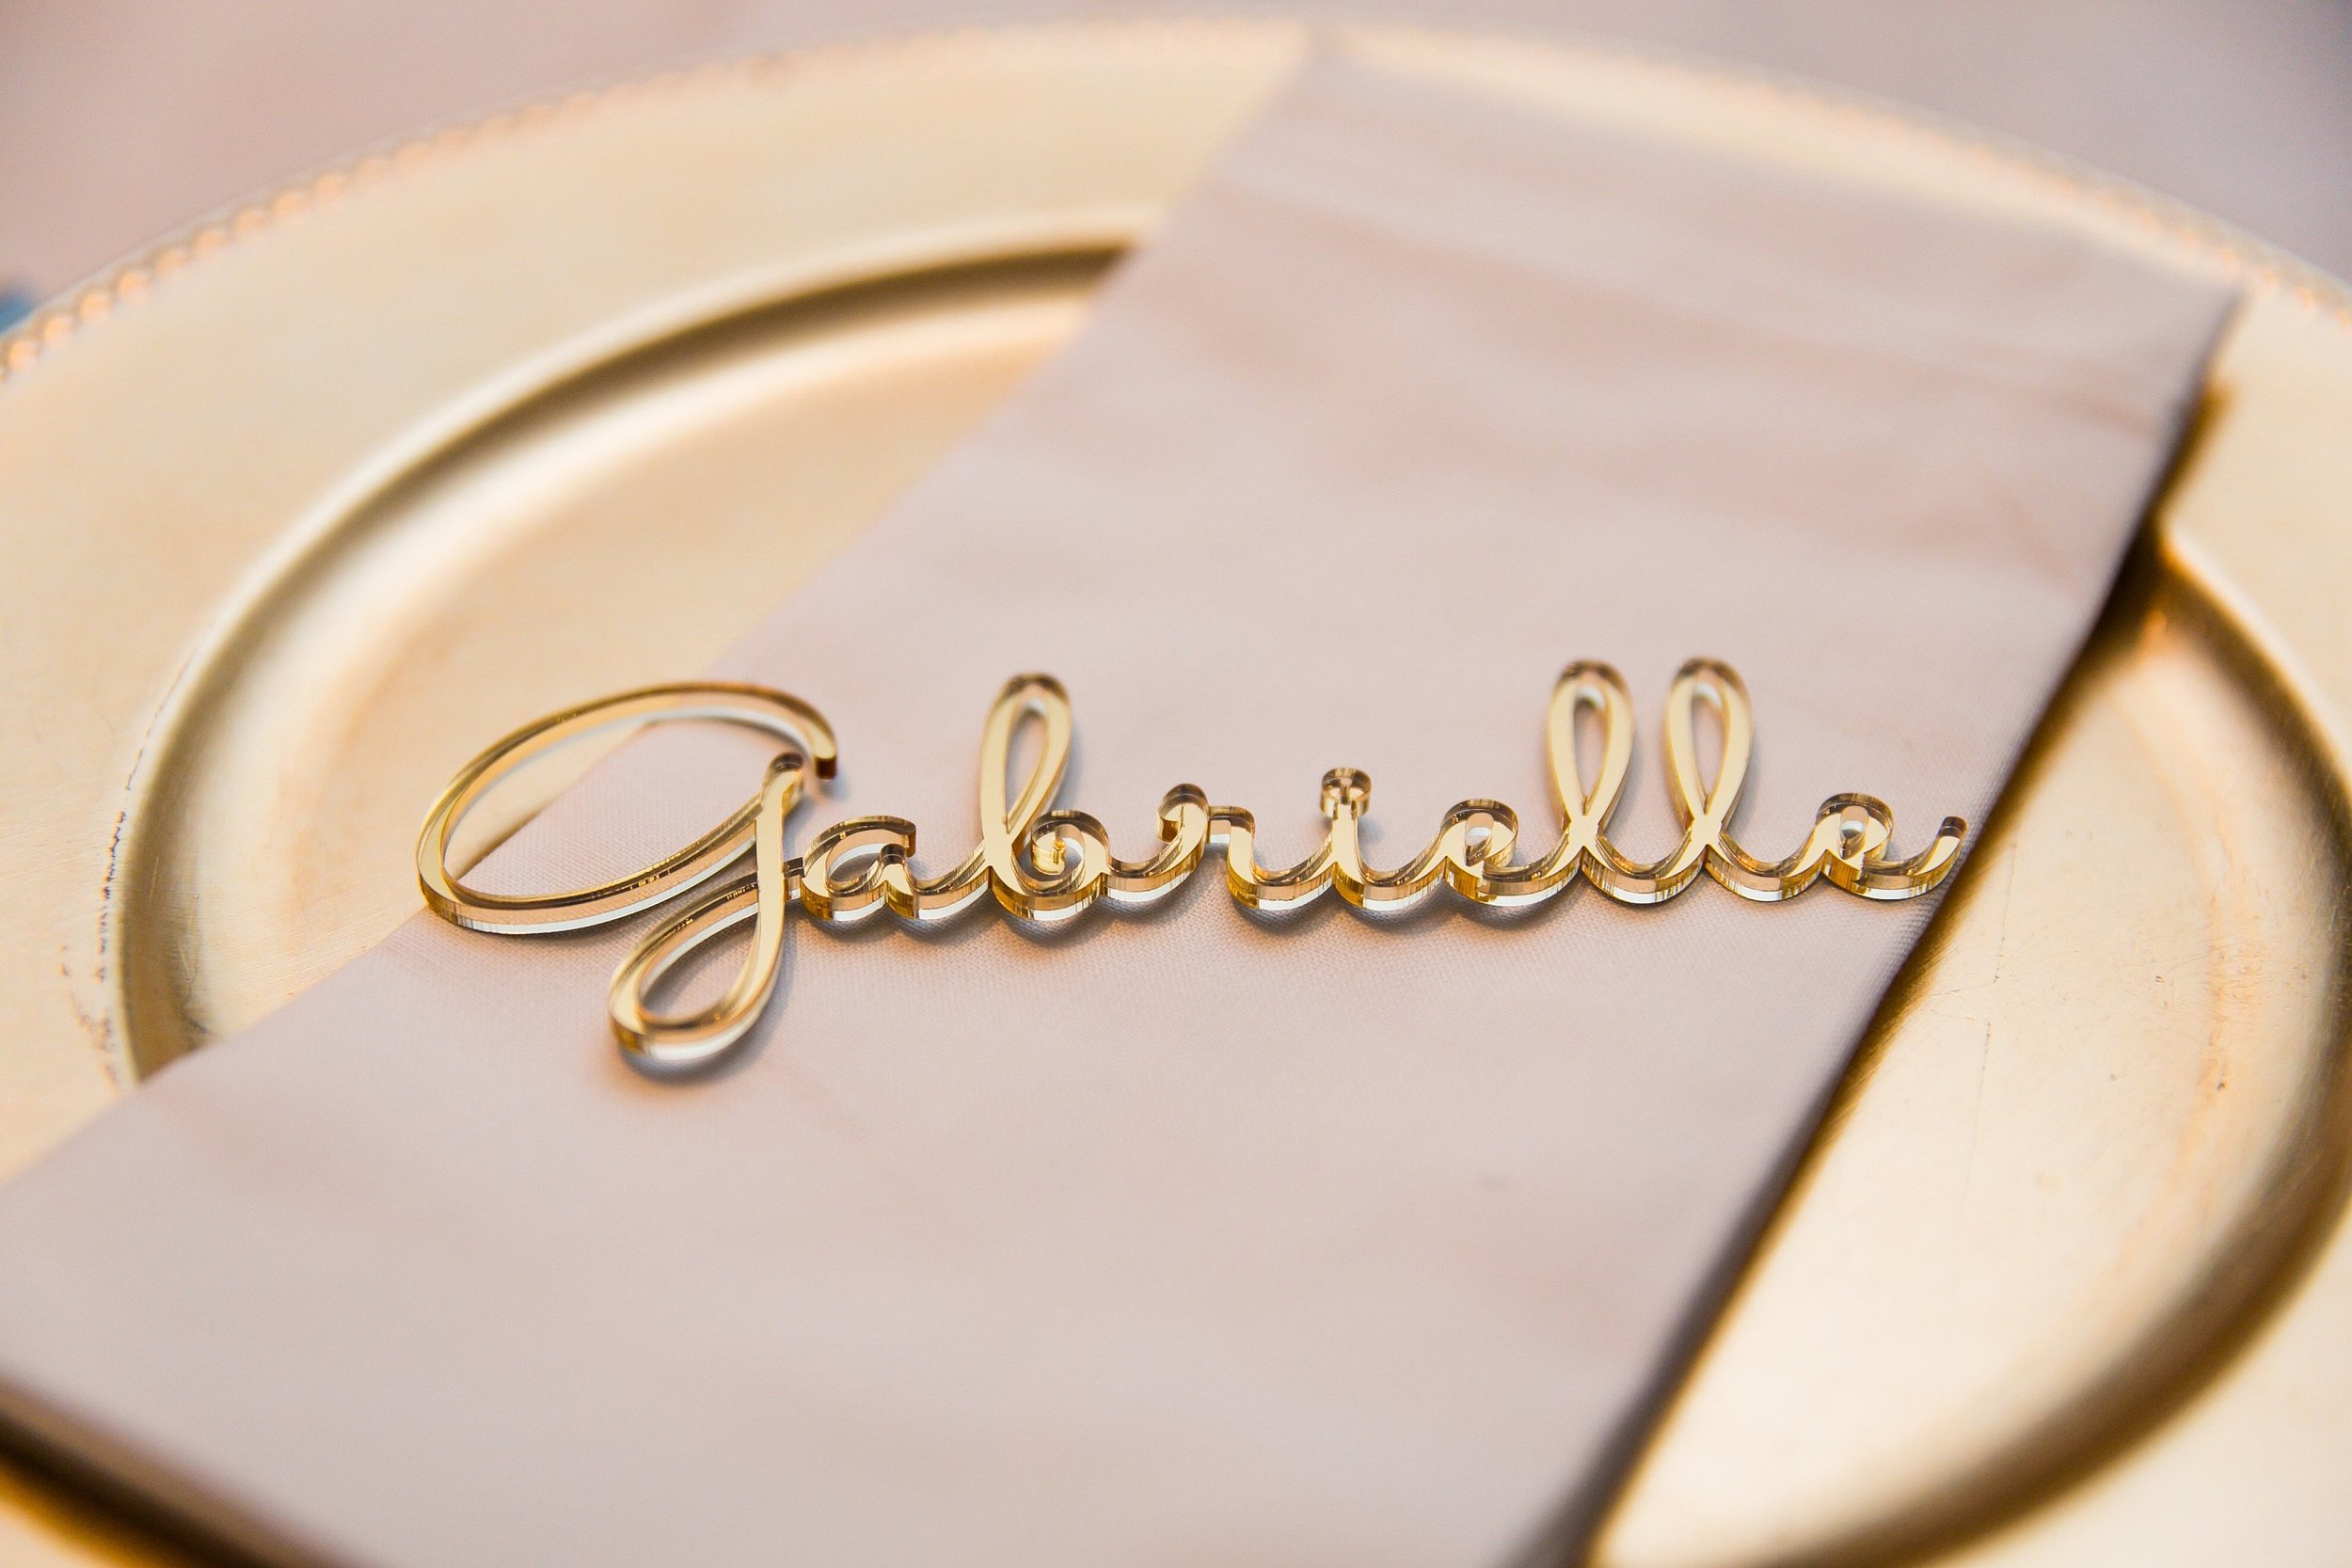 Personalized Acrylic Laser Cut Names Gold Place Cards Name Settings Guest Tags Wedding Party.jpg